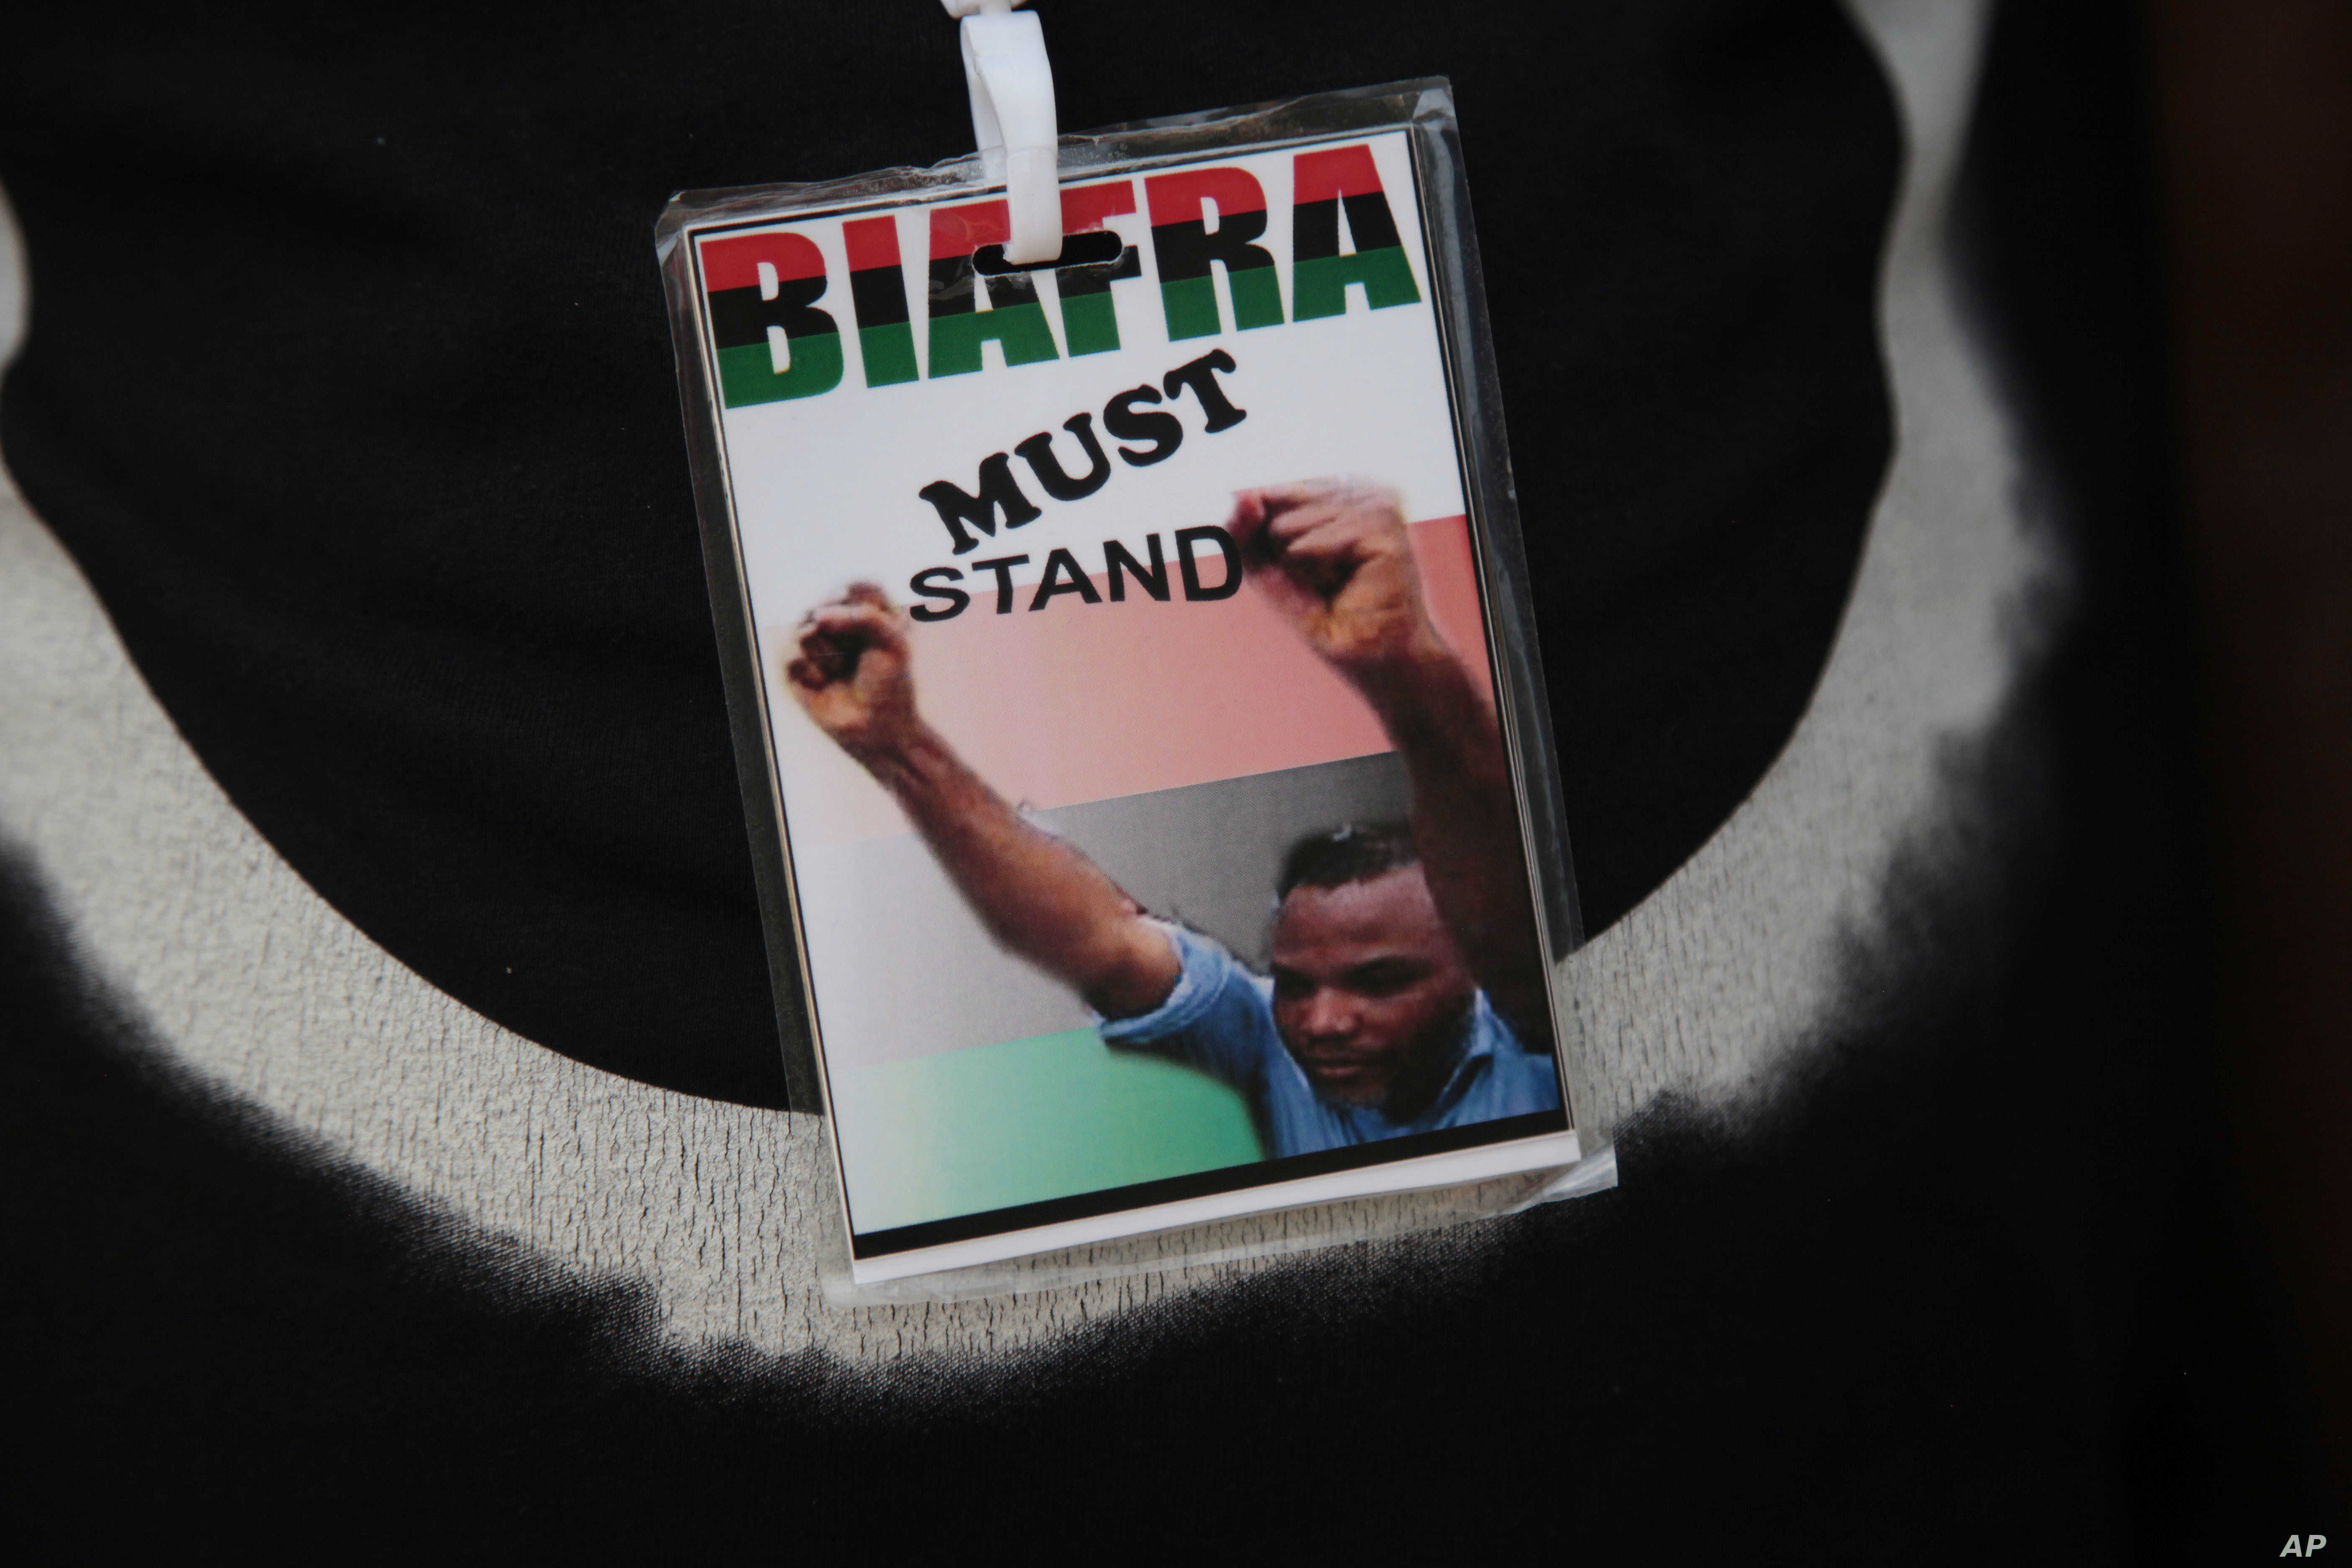 Ethnic Tensions Bubble in Nigeria in Echo of Biafra Civil